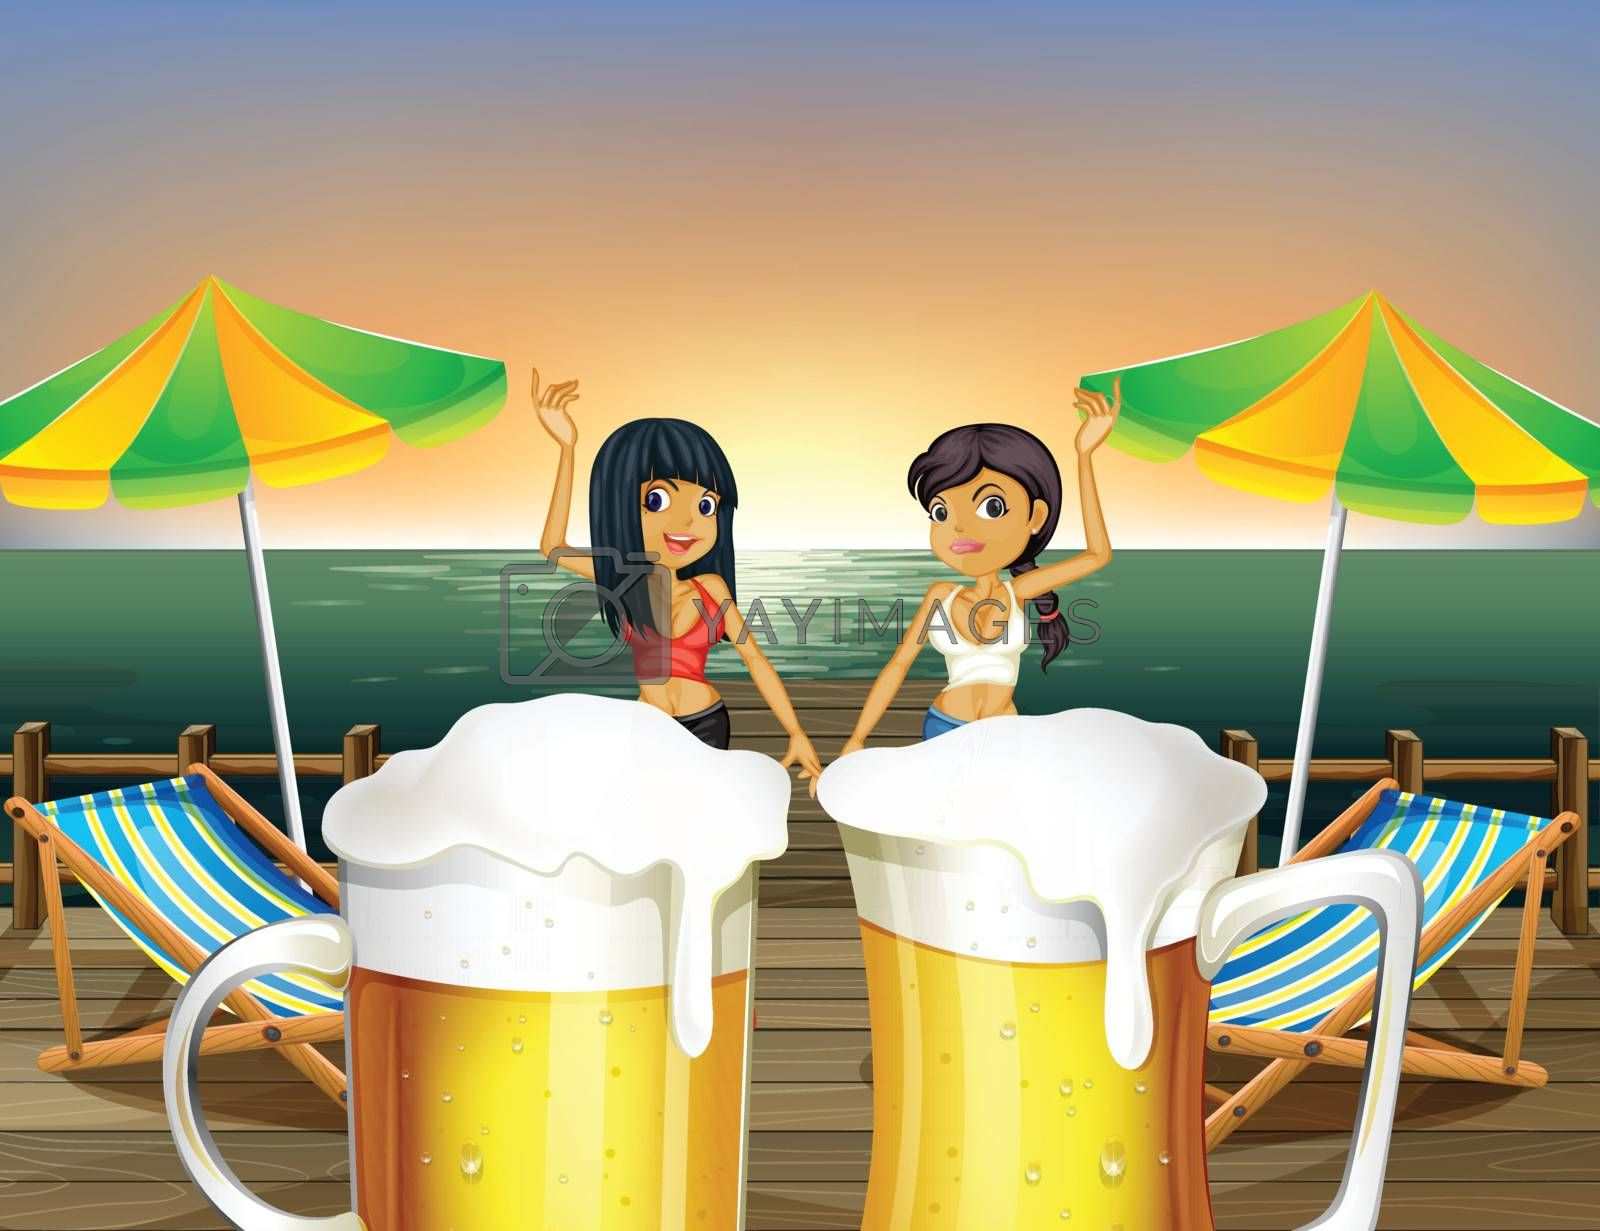 Illustration of the ladies at the wooden bridge and the pitchers of beer